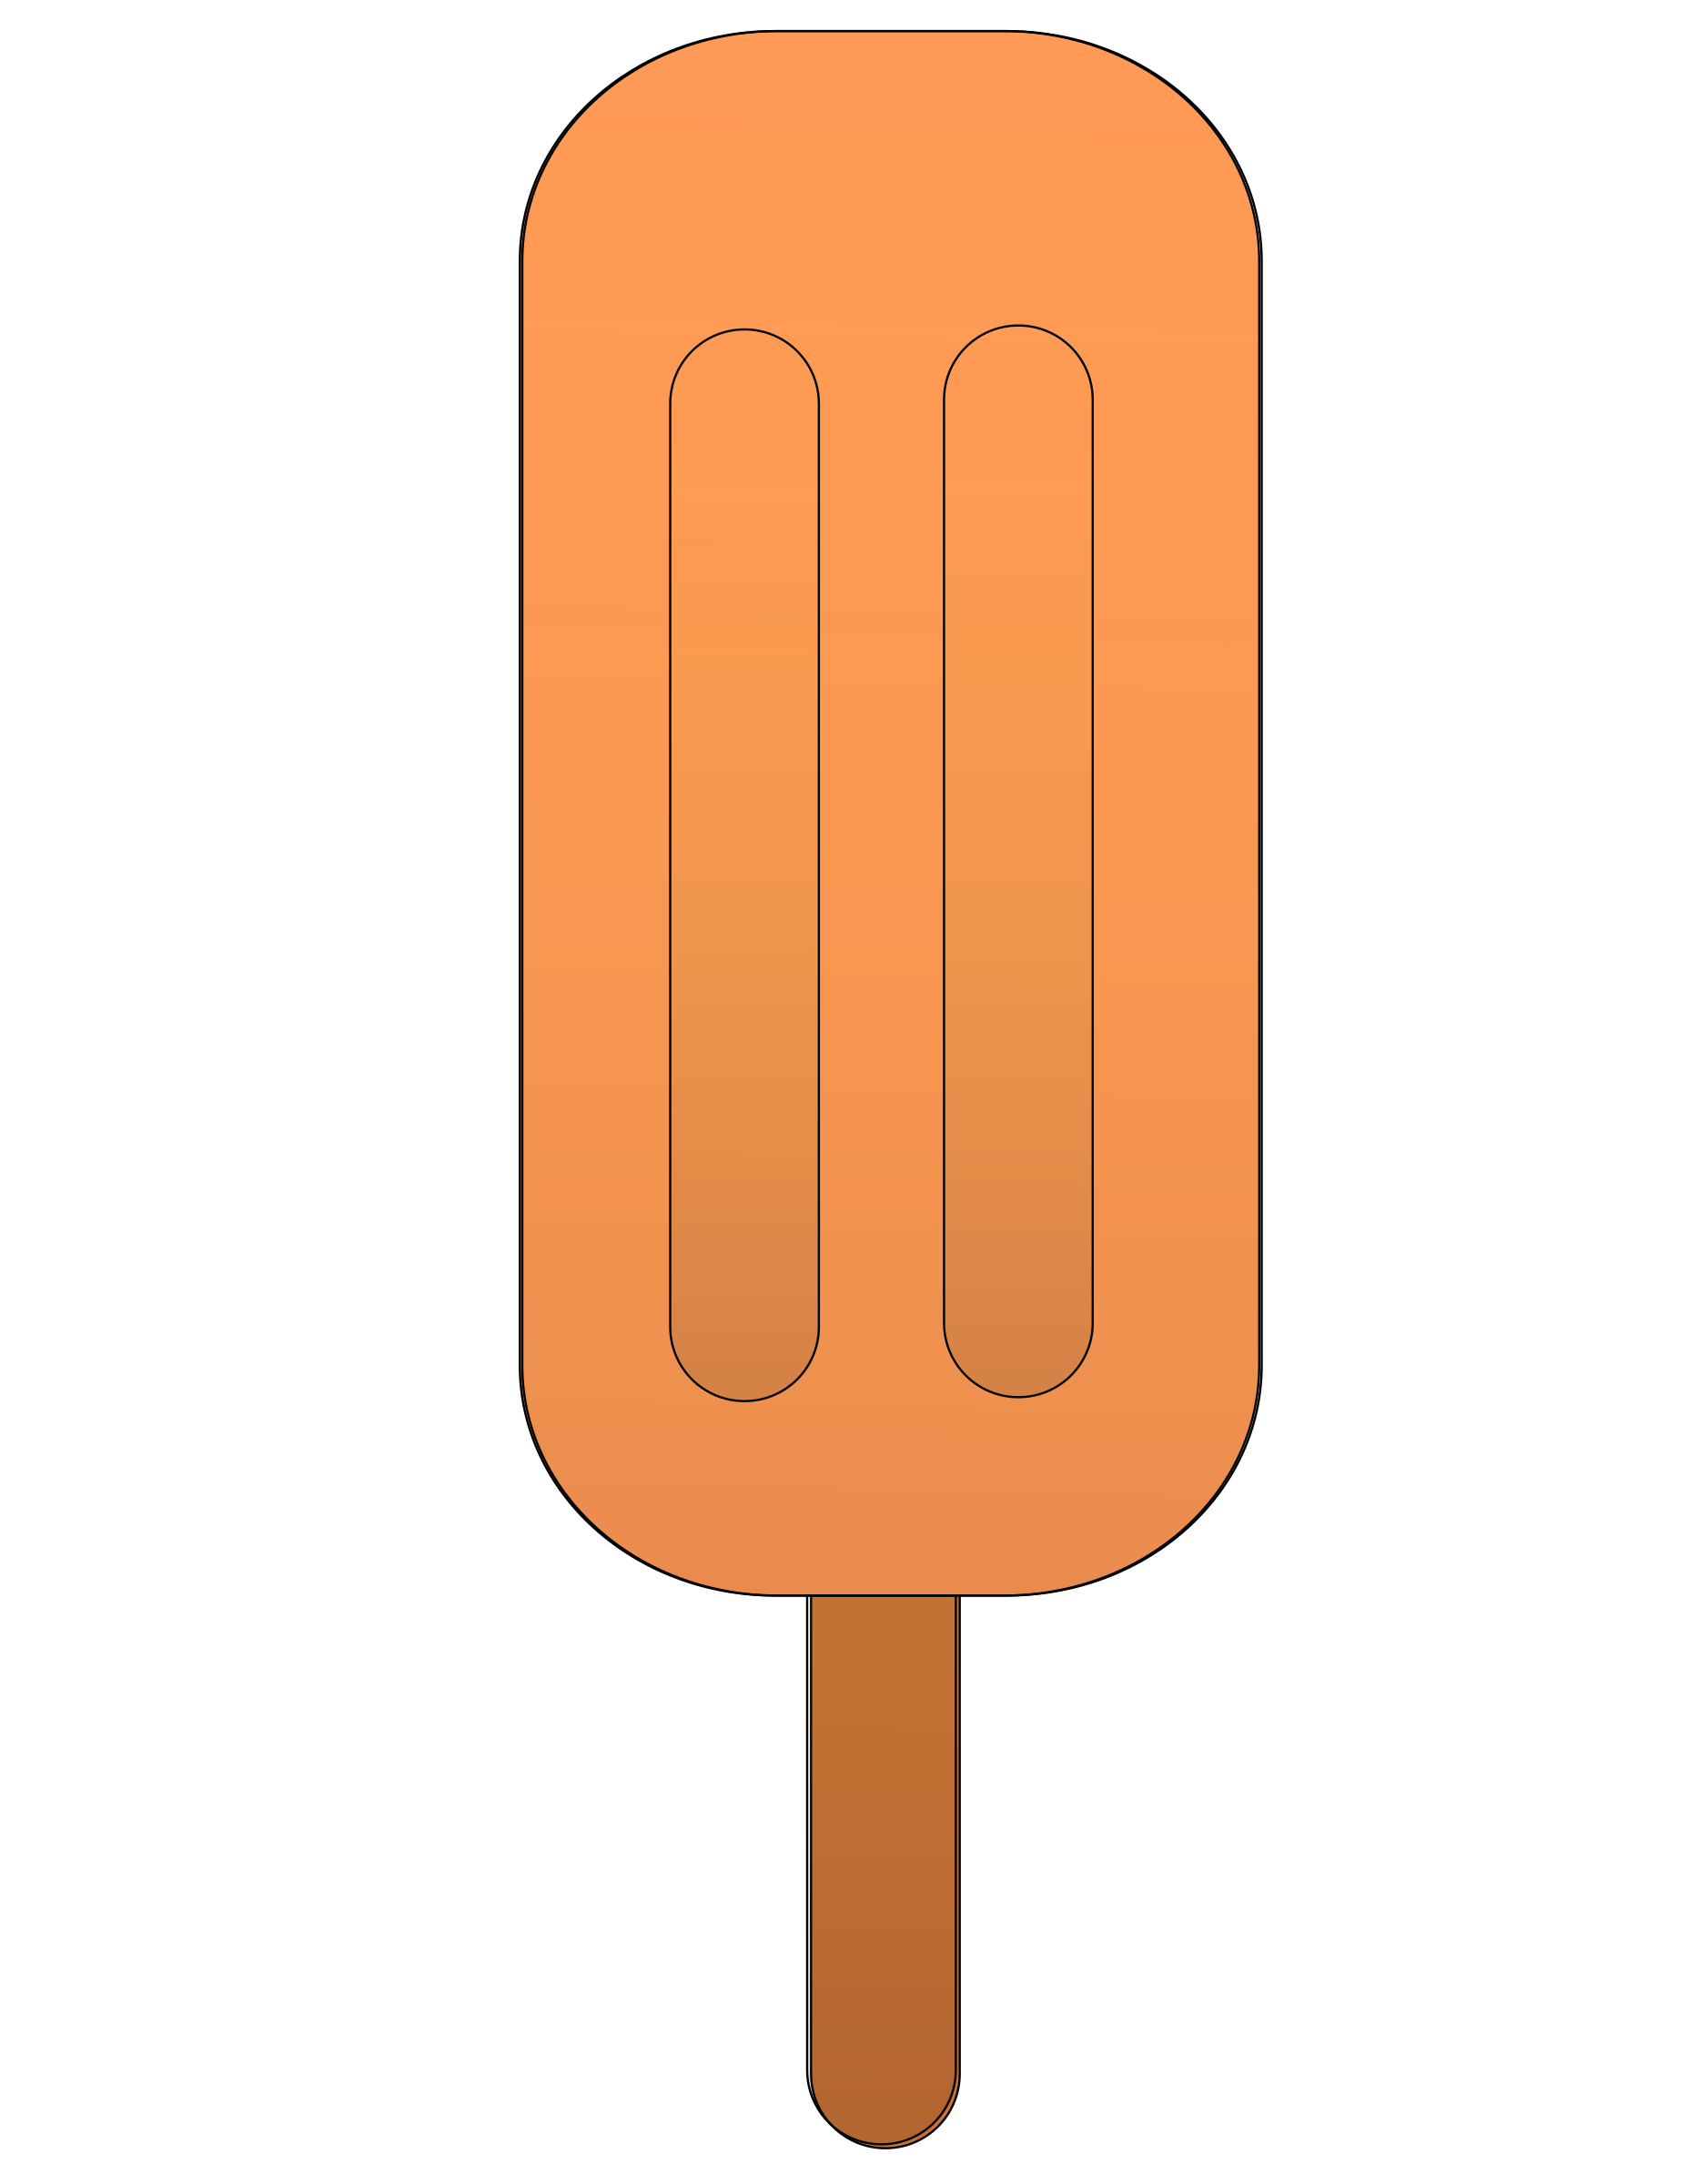 Popsicle png. Orange icons free and